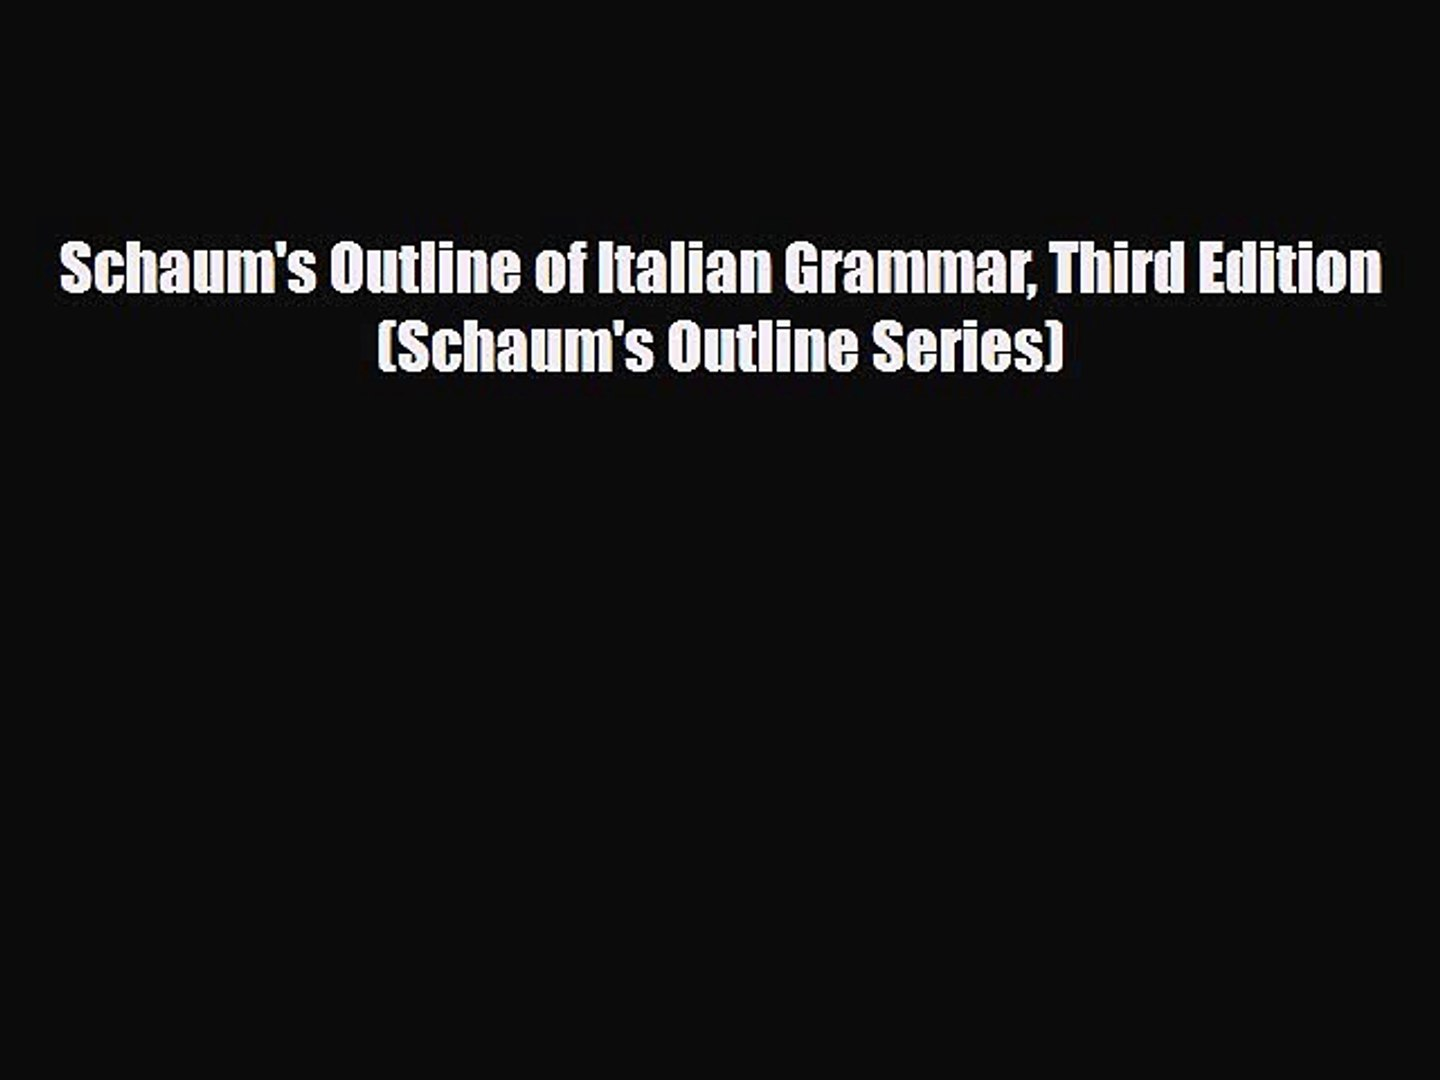 Schaums Outline of Italian Grammar 4th Edition